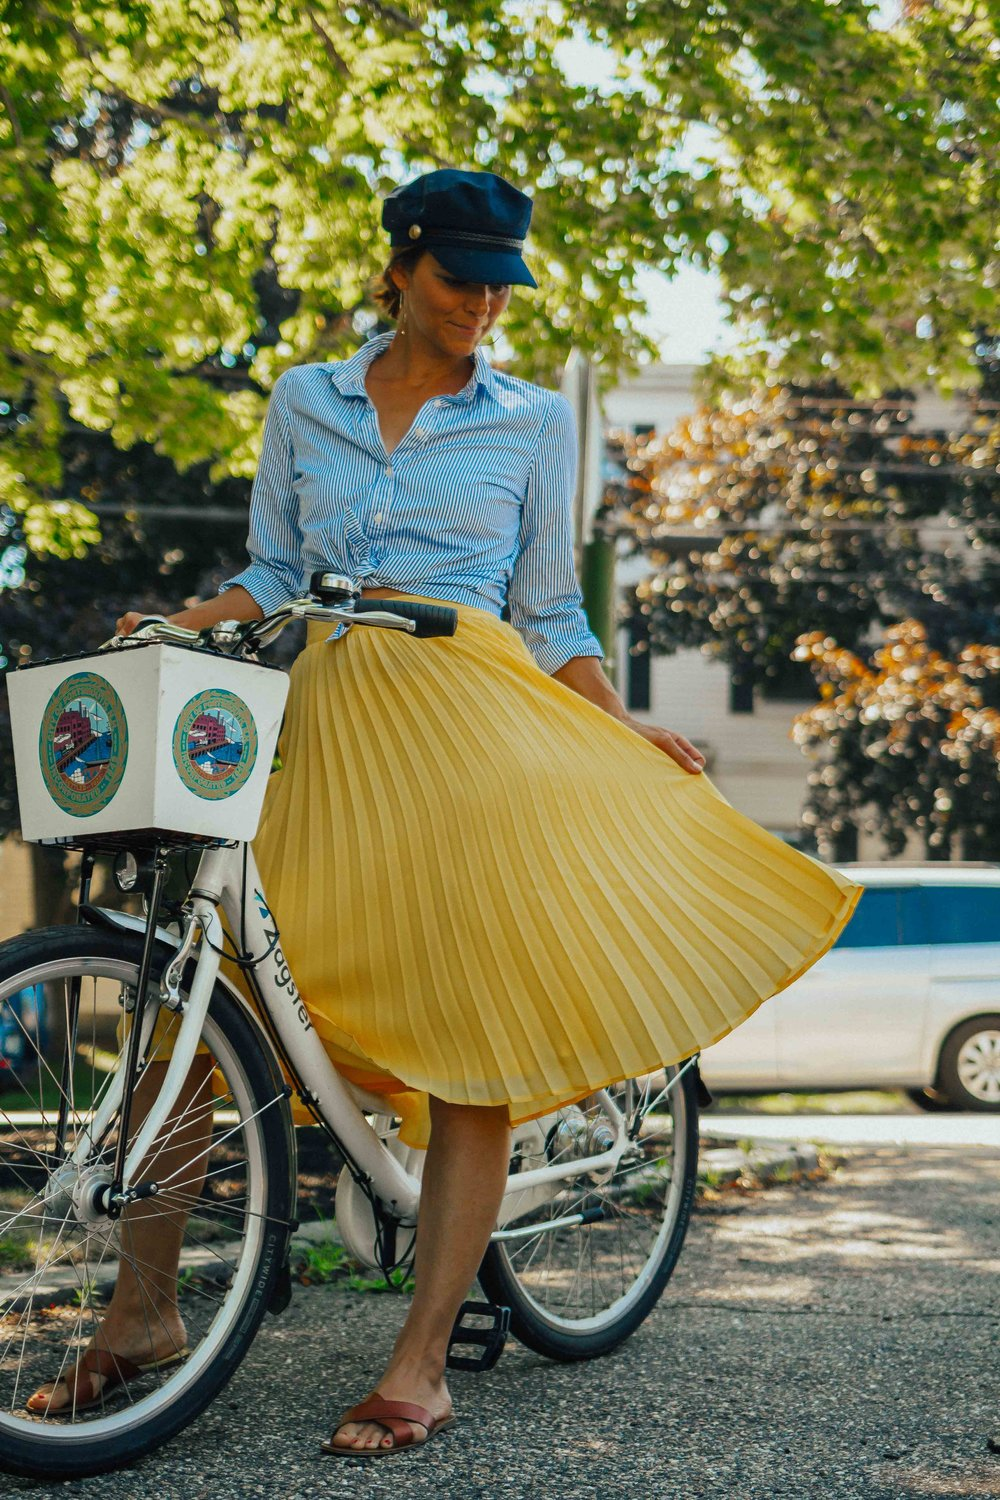 Summer Outfit Ideas – Yellow Midi Skirt Outfits – Yellow Pleated Skirt Outfit Ideas – Datenight Outfit Ideas – Midi Skirt Outfits - Captain's Cap Outfits – 5 Ways to Make the Most of Your Weekend - #yellowpleatedskirt #summeroutfits #weekends #heartandseam  www.heartandseam.com